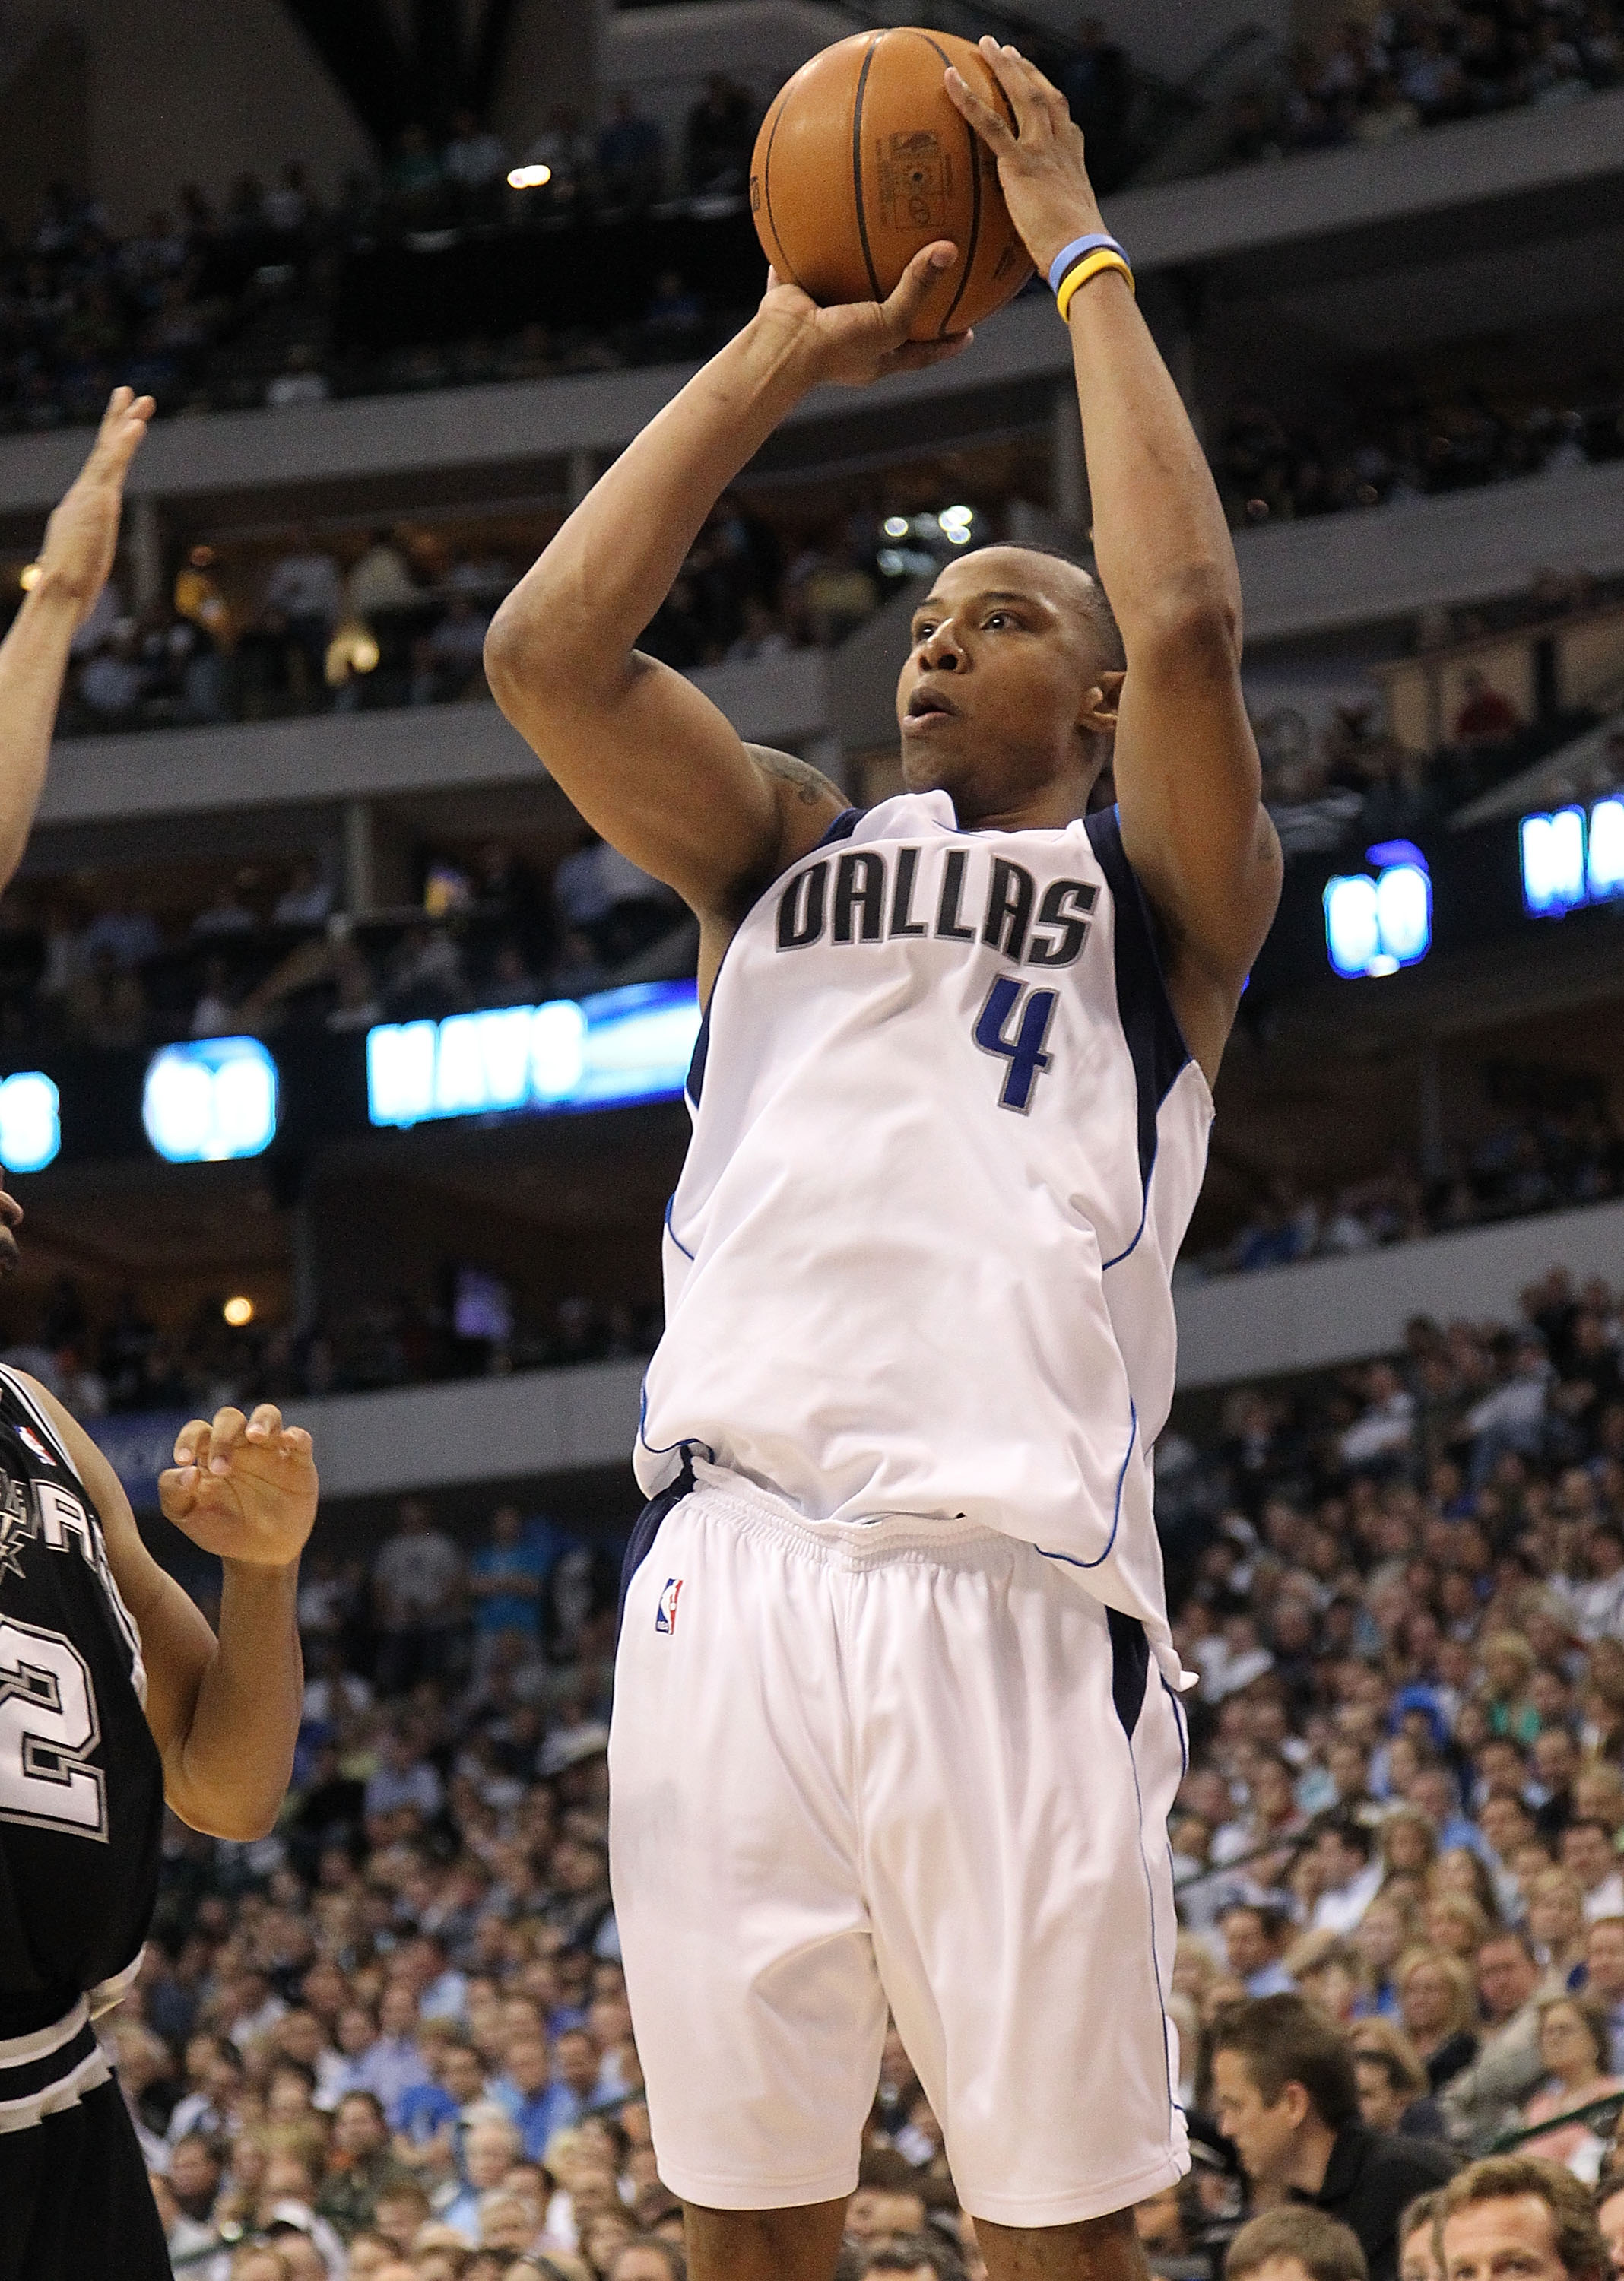 DALLAS - APRIL 27:  Forward Caron Butler #4 of the Dallas Mavericks takes a shot against the San Antonio Spurs in Game Five of the Western Conference Quarterfinals during the 2010 NBA Playoffs at American Airlines Center on April 27, 2010 in Dallas, Texas